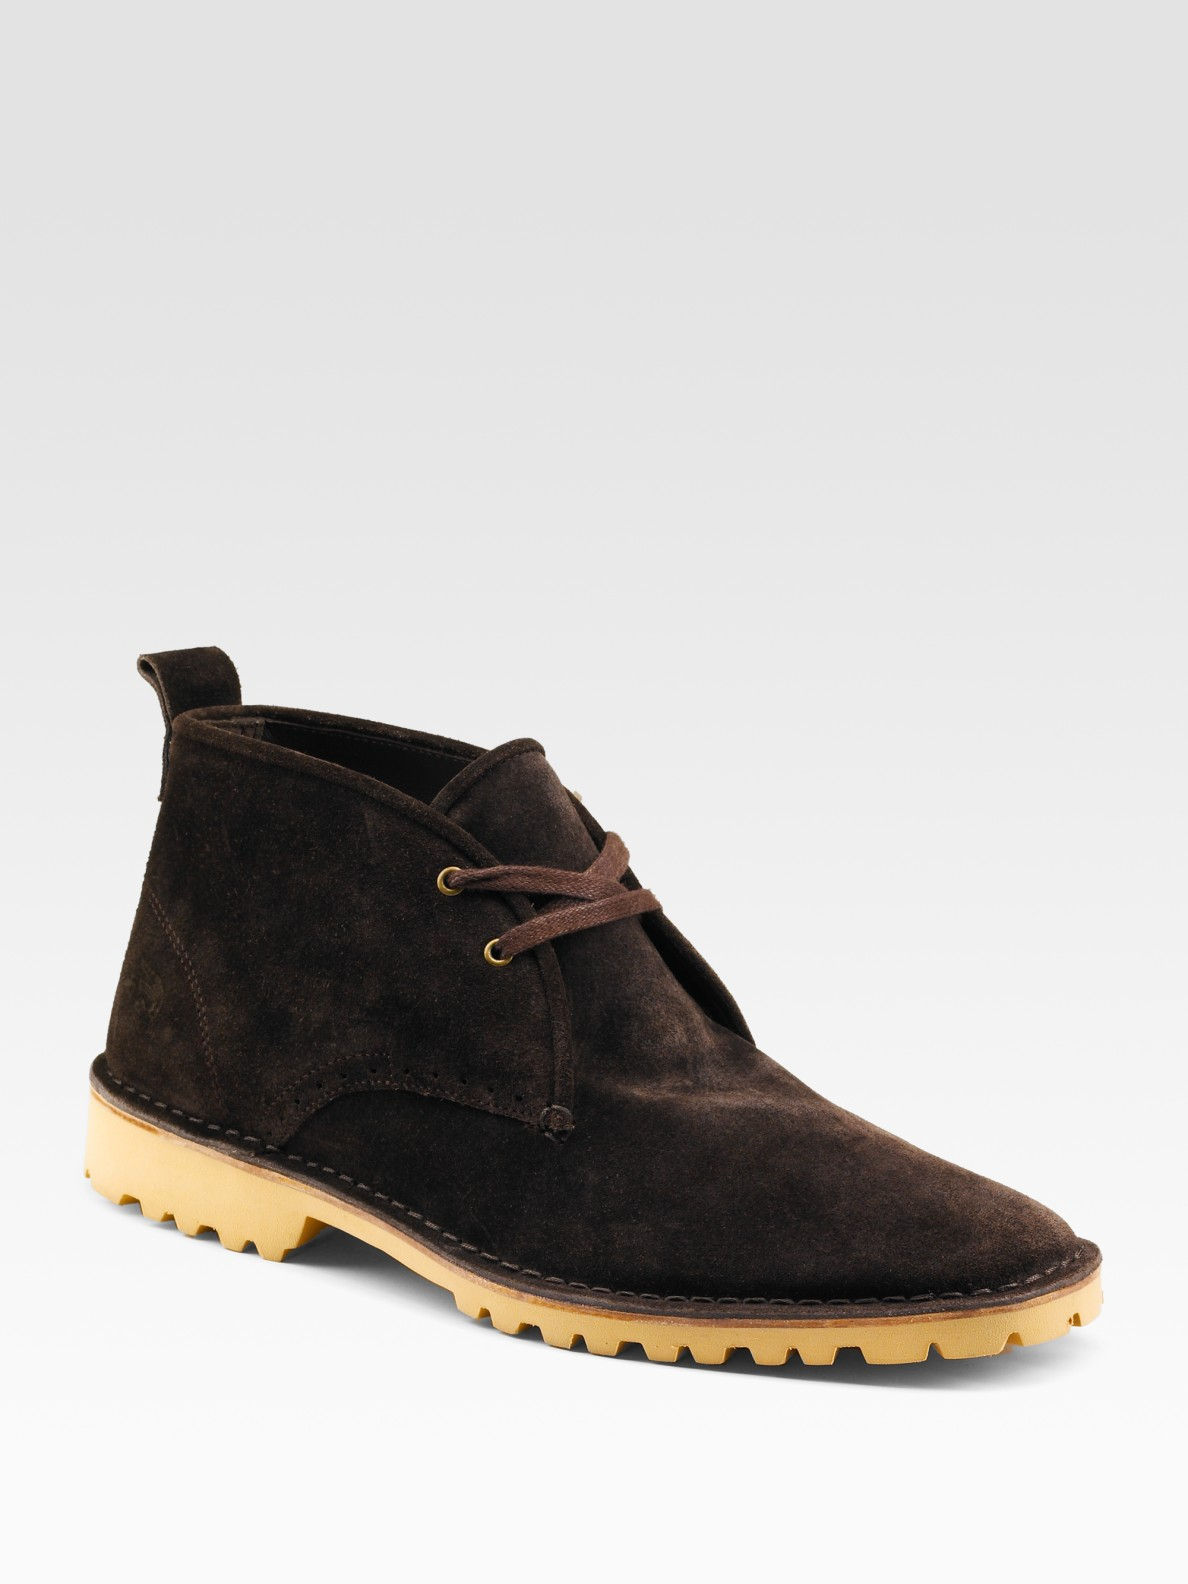 lacoste mesocco suede desert boots in brown for lyst